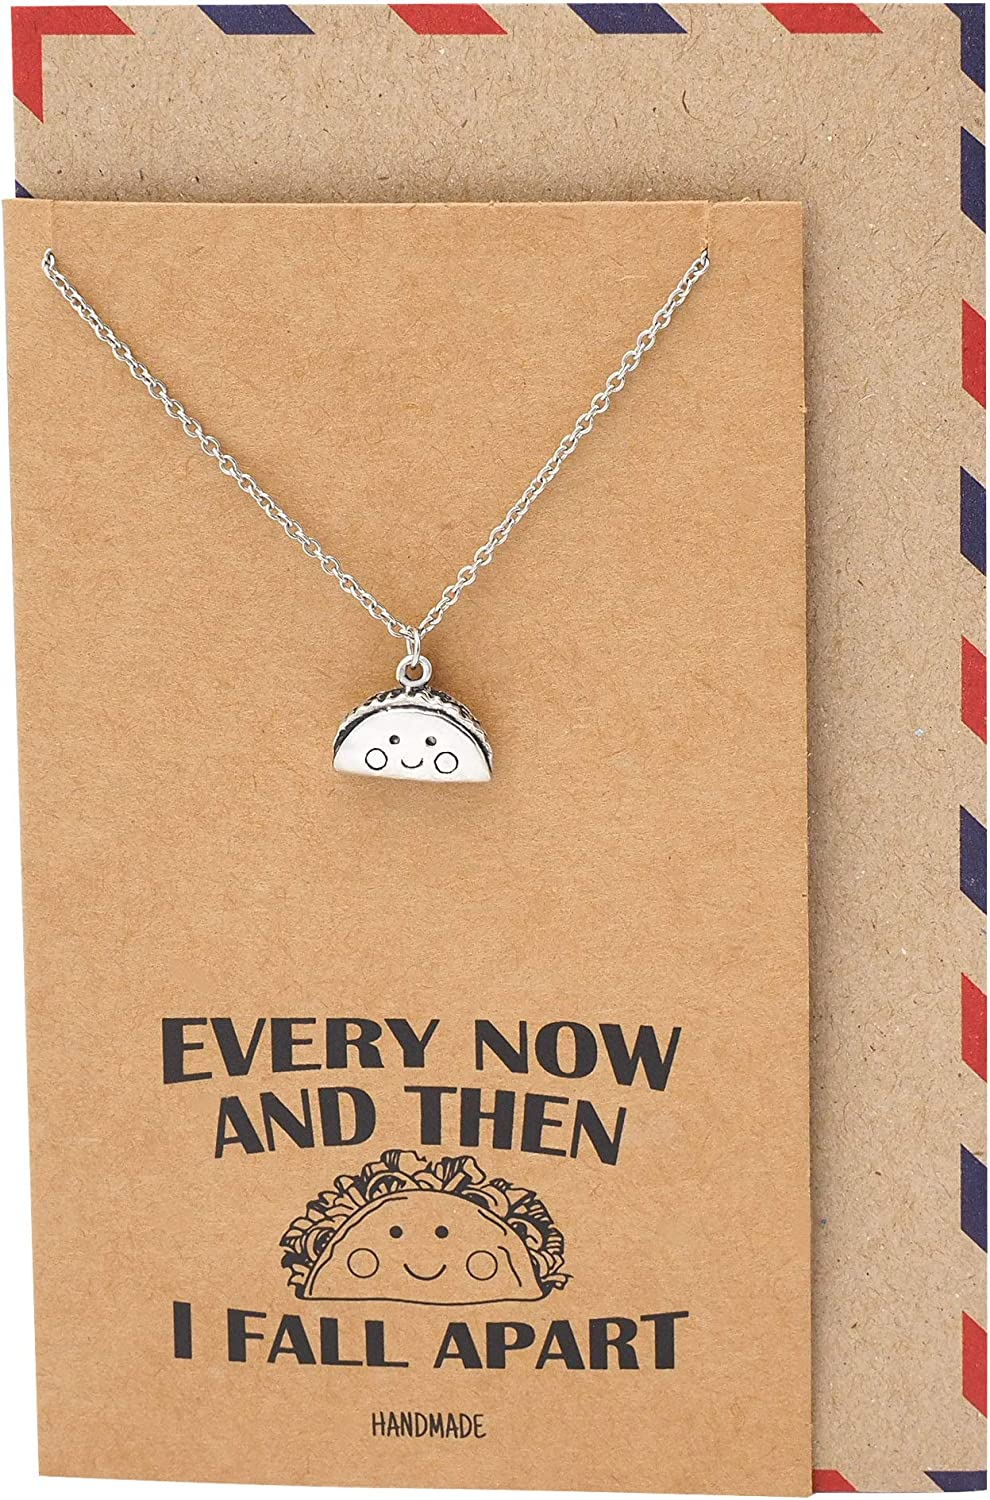 Quan Jewelry Taco Necklace, Gifts for Foodie Taco Lovers Mexican Food, Spanish Taco, Fall Apart Funny Quote Pendant Charm - 100% Handmade